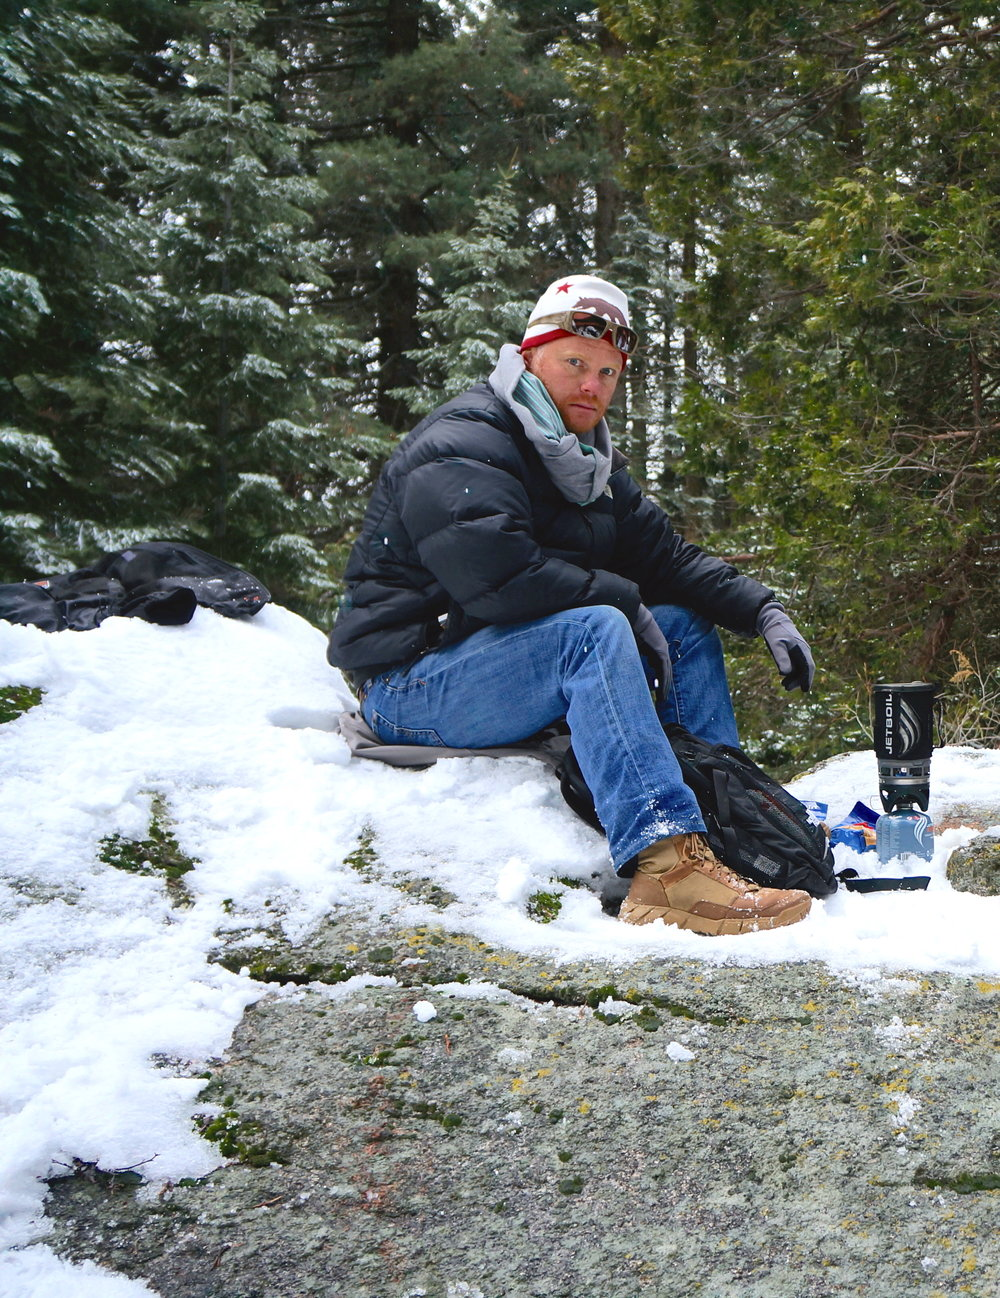 Average Oakley assault boot eric california sequoias snow outdoors 2015-02-28 13.06.34 (1).jpg